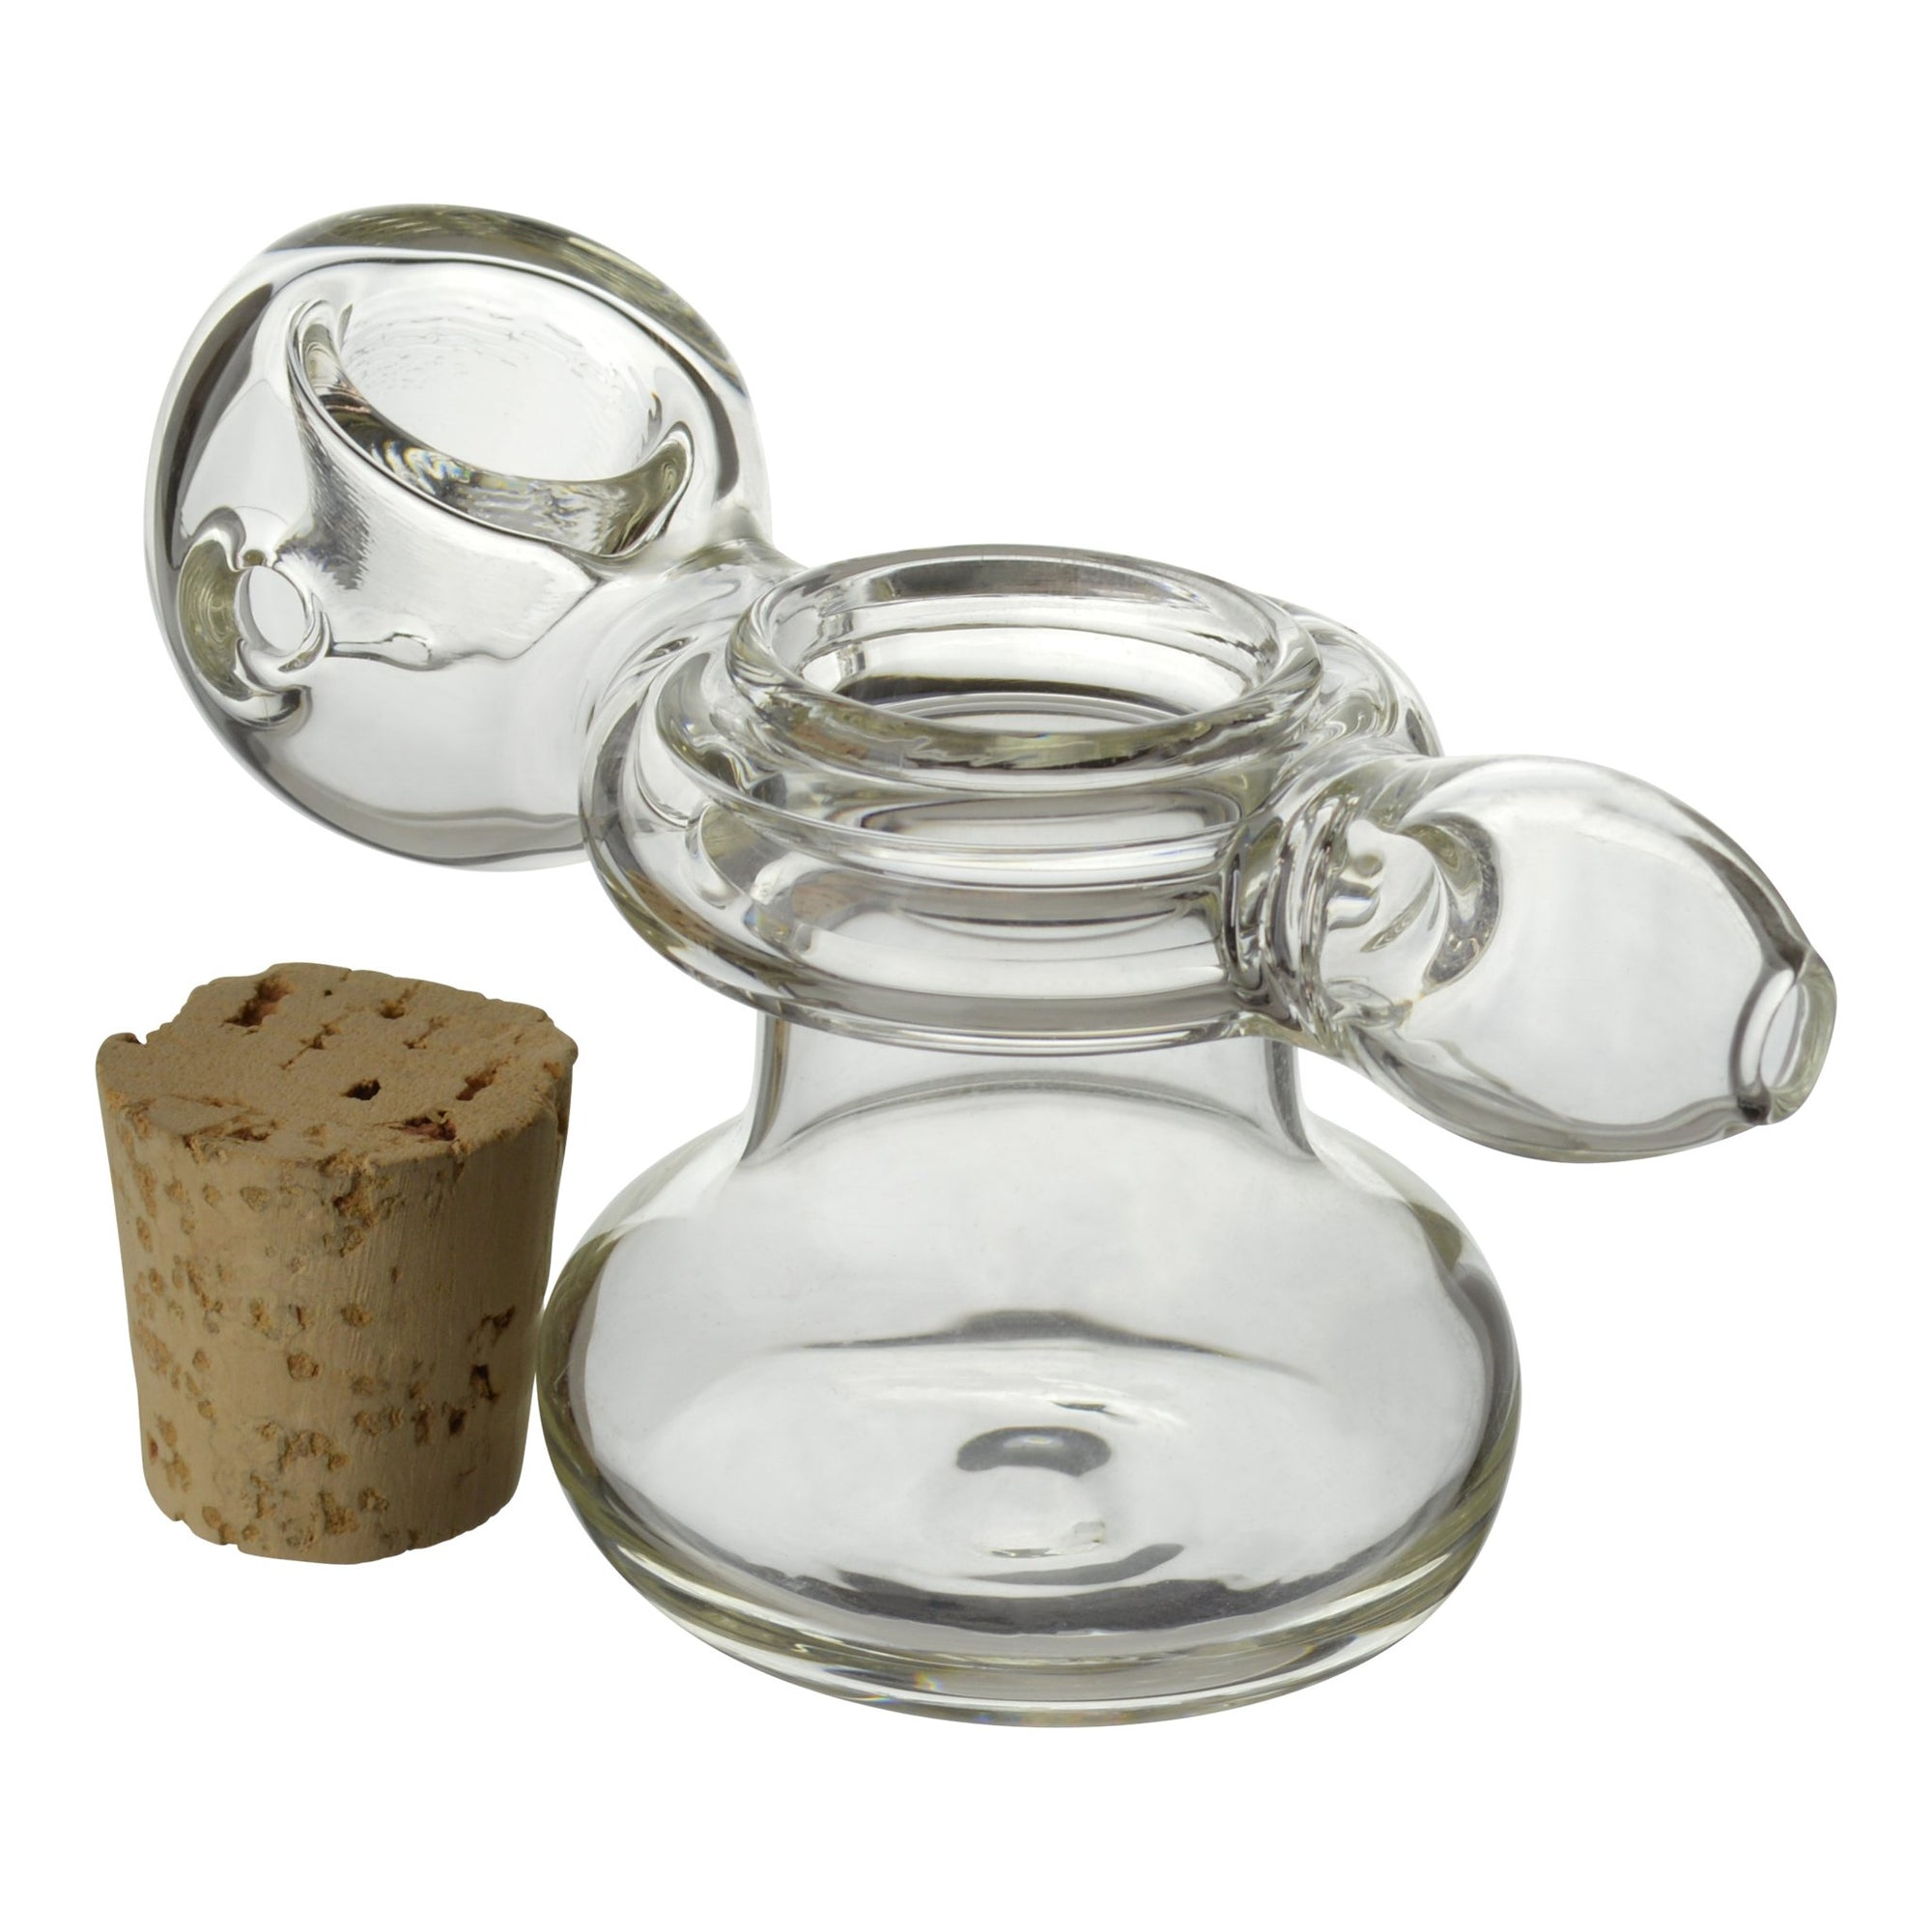 Cute 3.5 inch glass pipe with stash smoking device removed cork on left 2 in 1 stash and pipe functional travel friendly